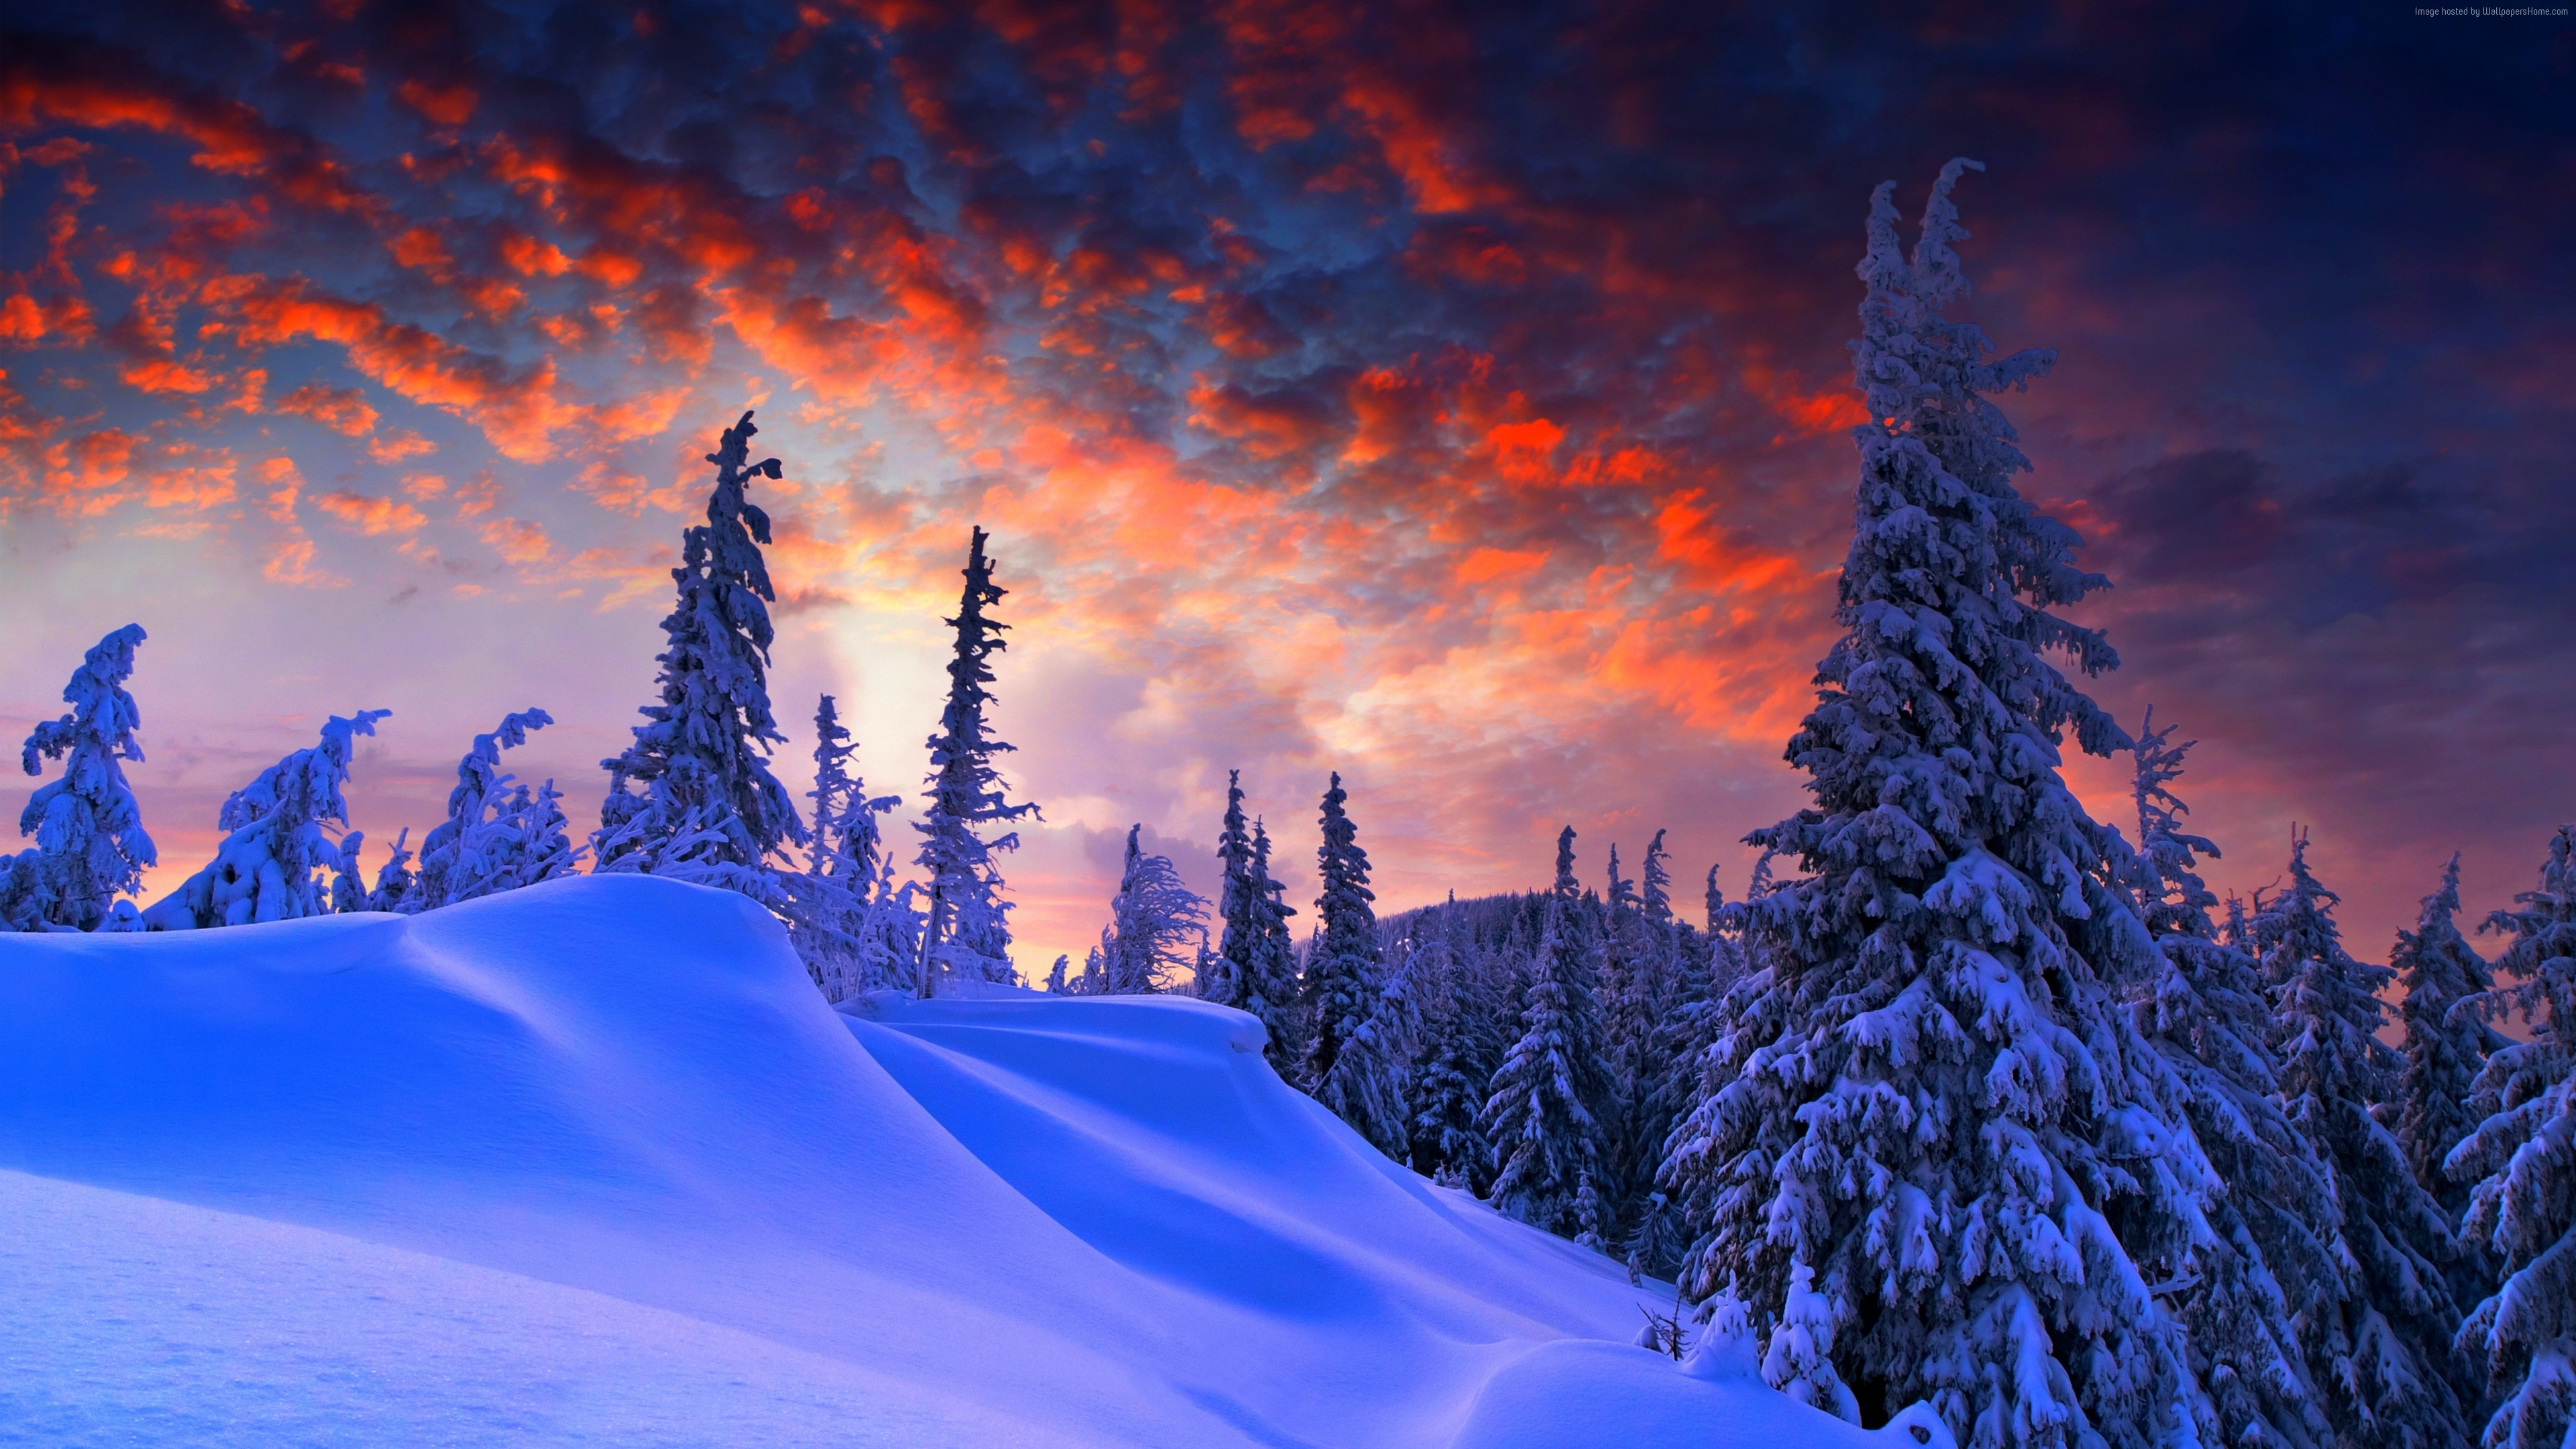 Wallpaper forest, snow, winter, sunrise, clouds, 8k, Nature